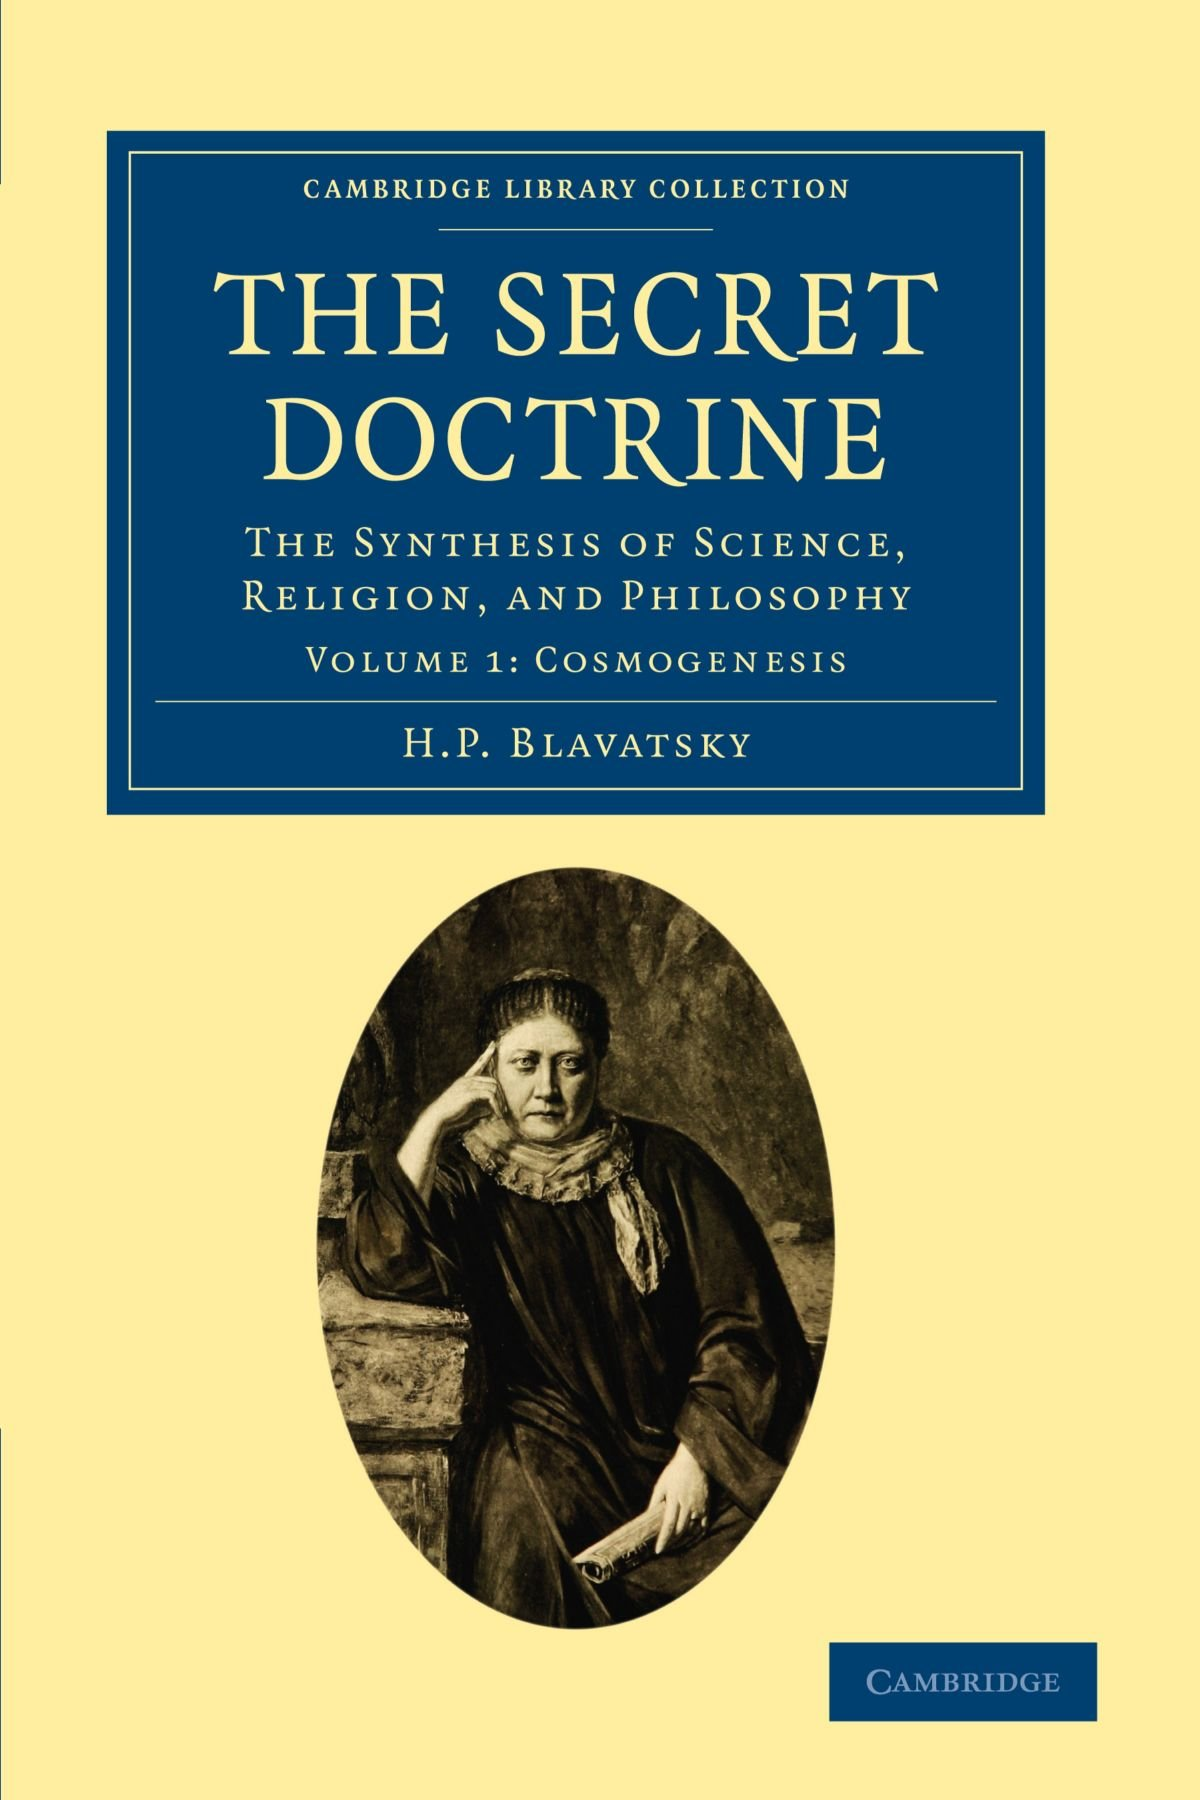 Download The Secret Doctrine: The Synthesis of Science, Religion, and Philosophy (Cambridge Library Collection - Spiritualism and Esoteric Knowledge) (Volume 1) pdf